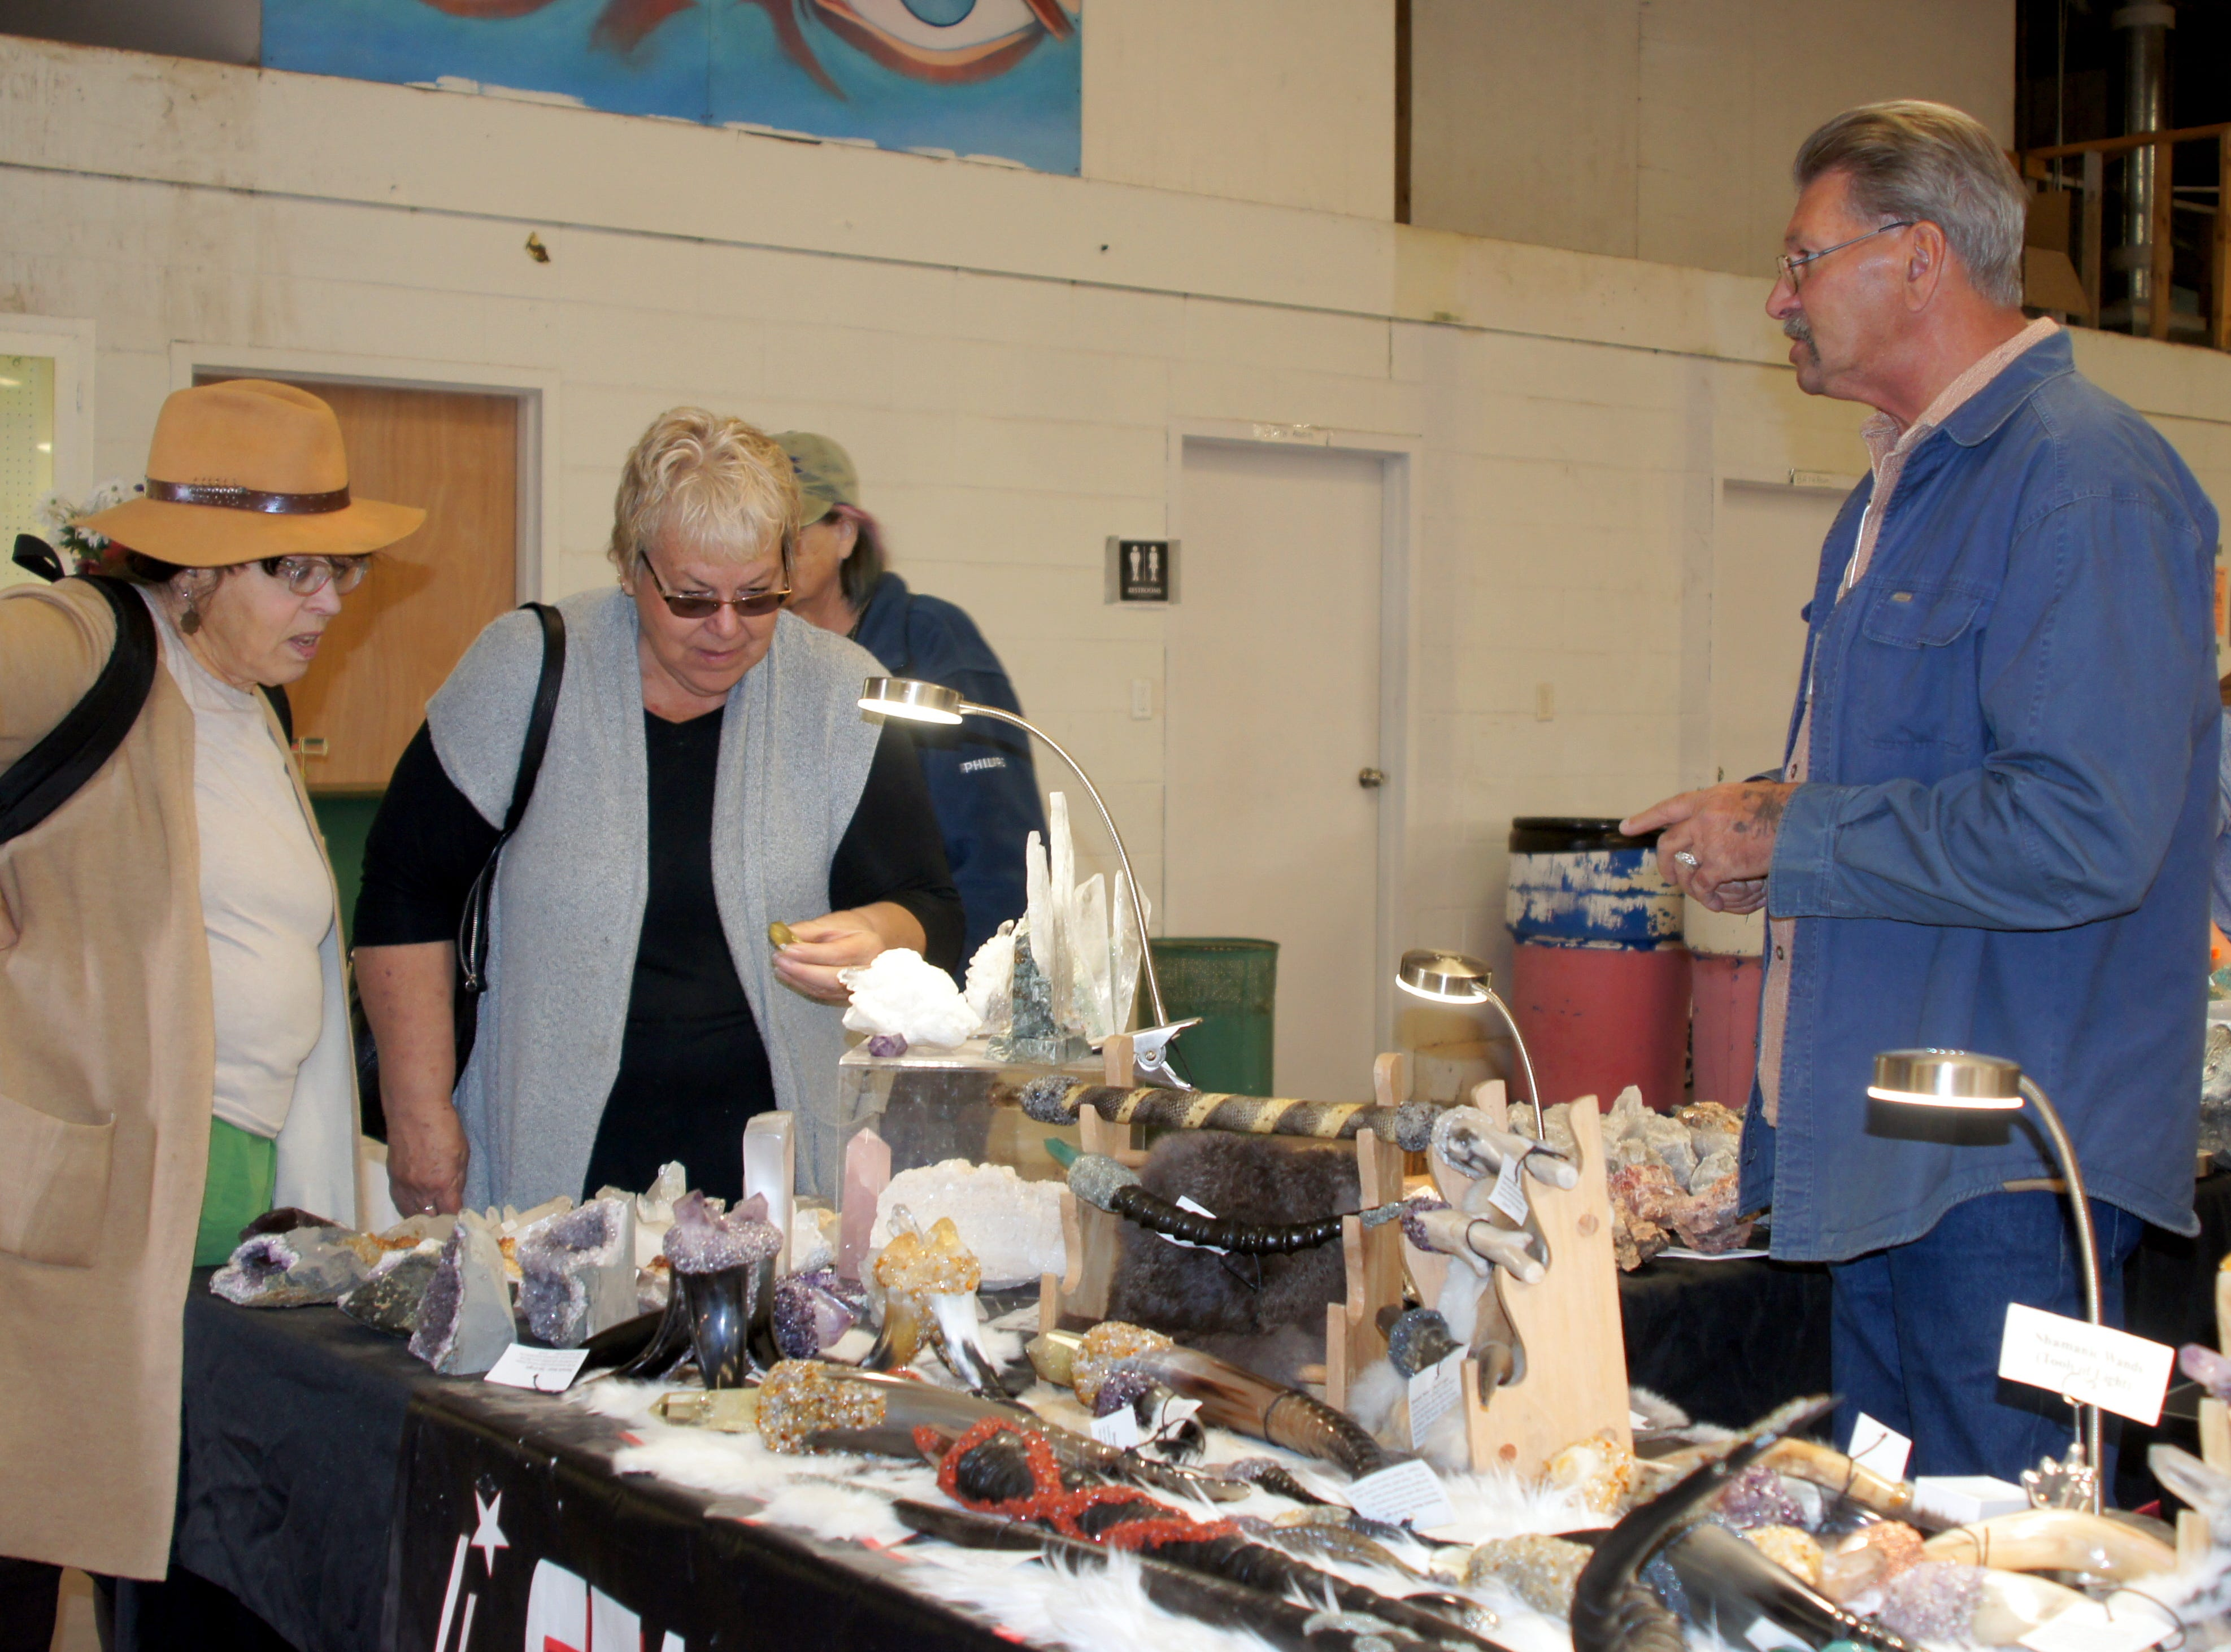 The 54th annual Rockhound Roundup drew buyers, sellers and the curious to Deing, NM.